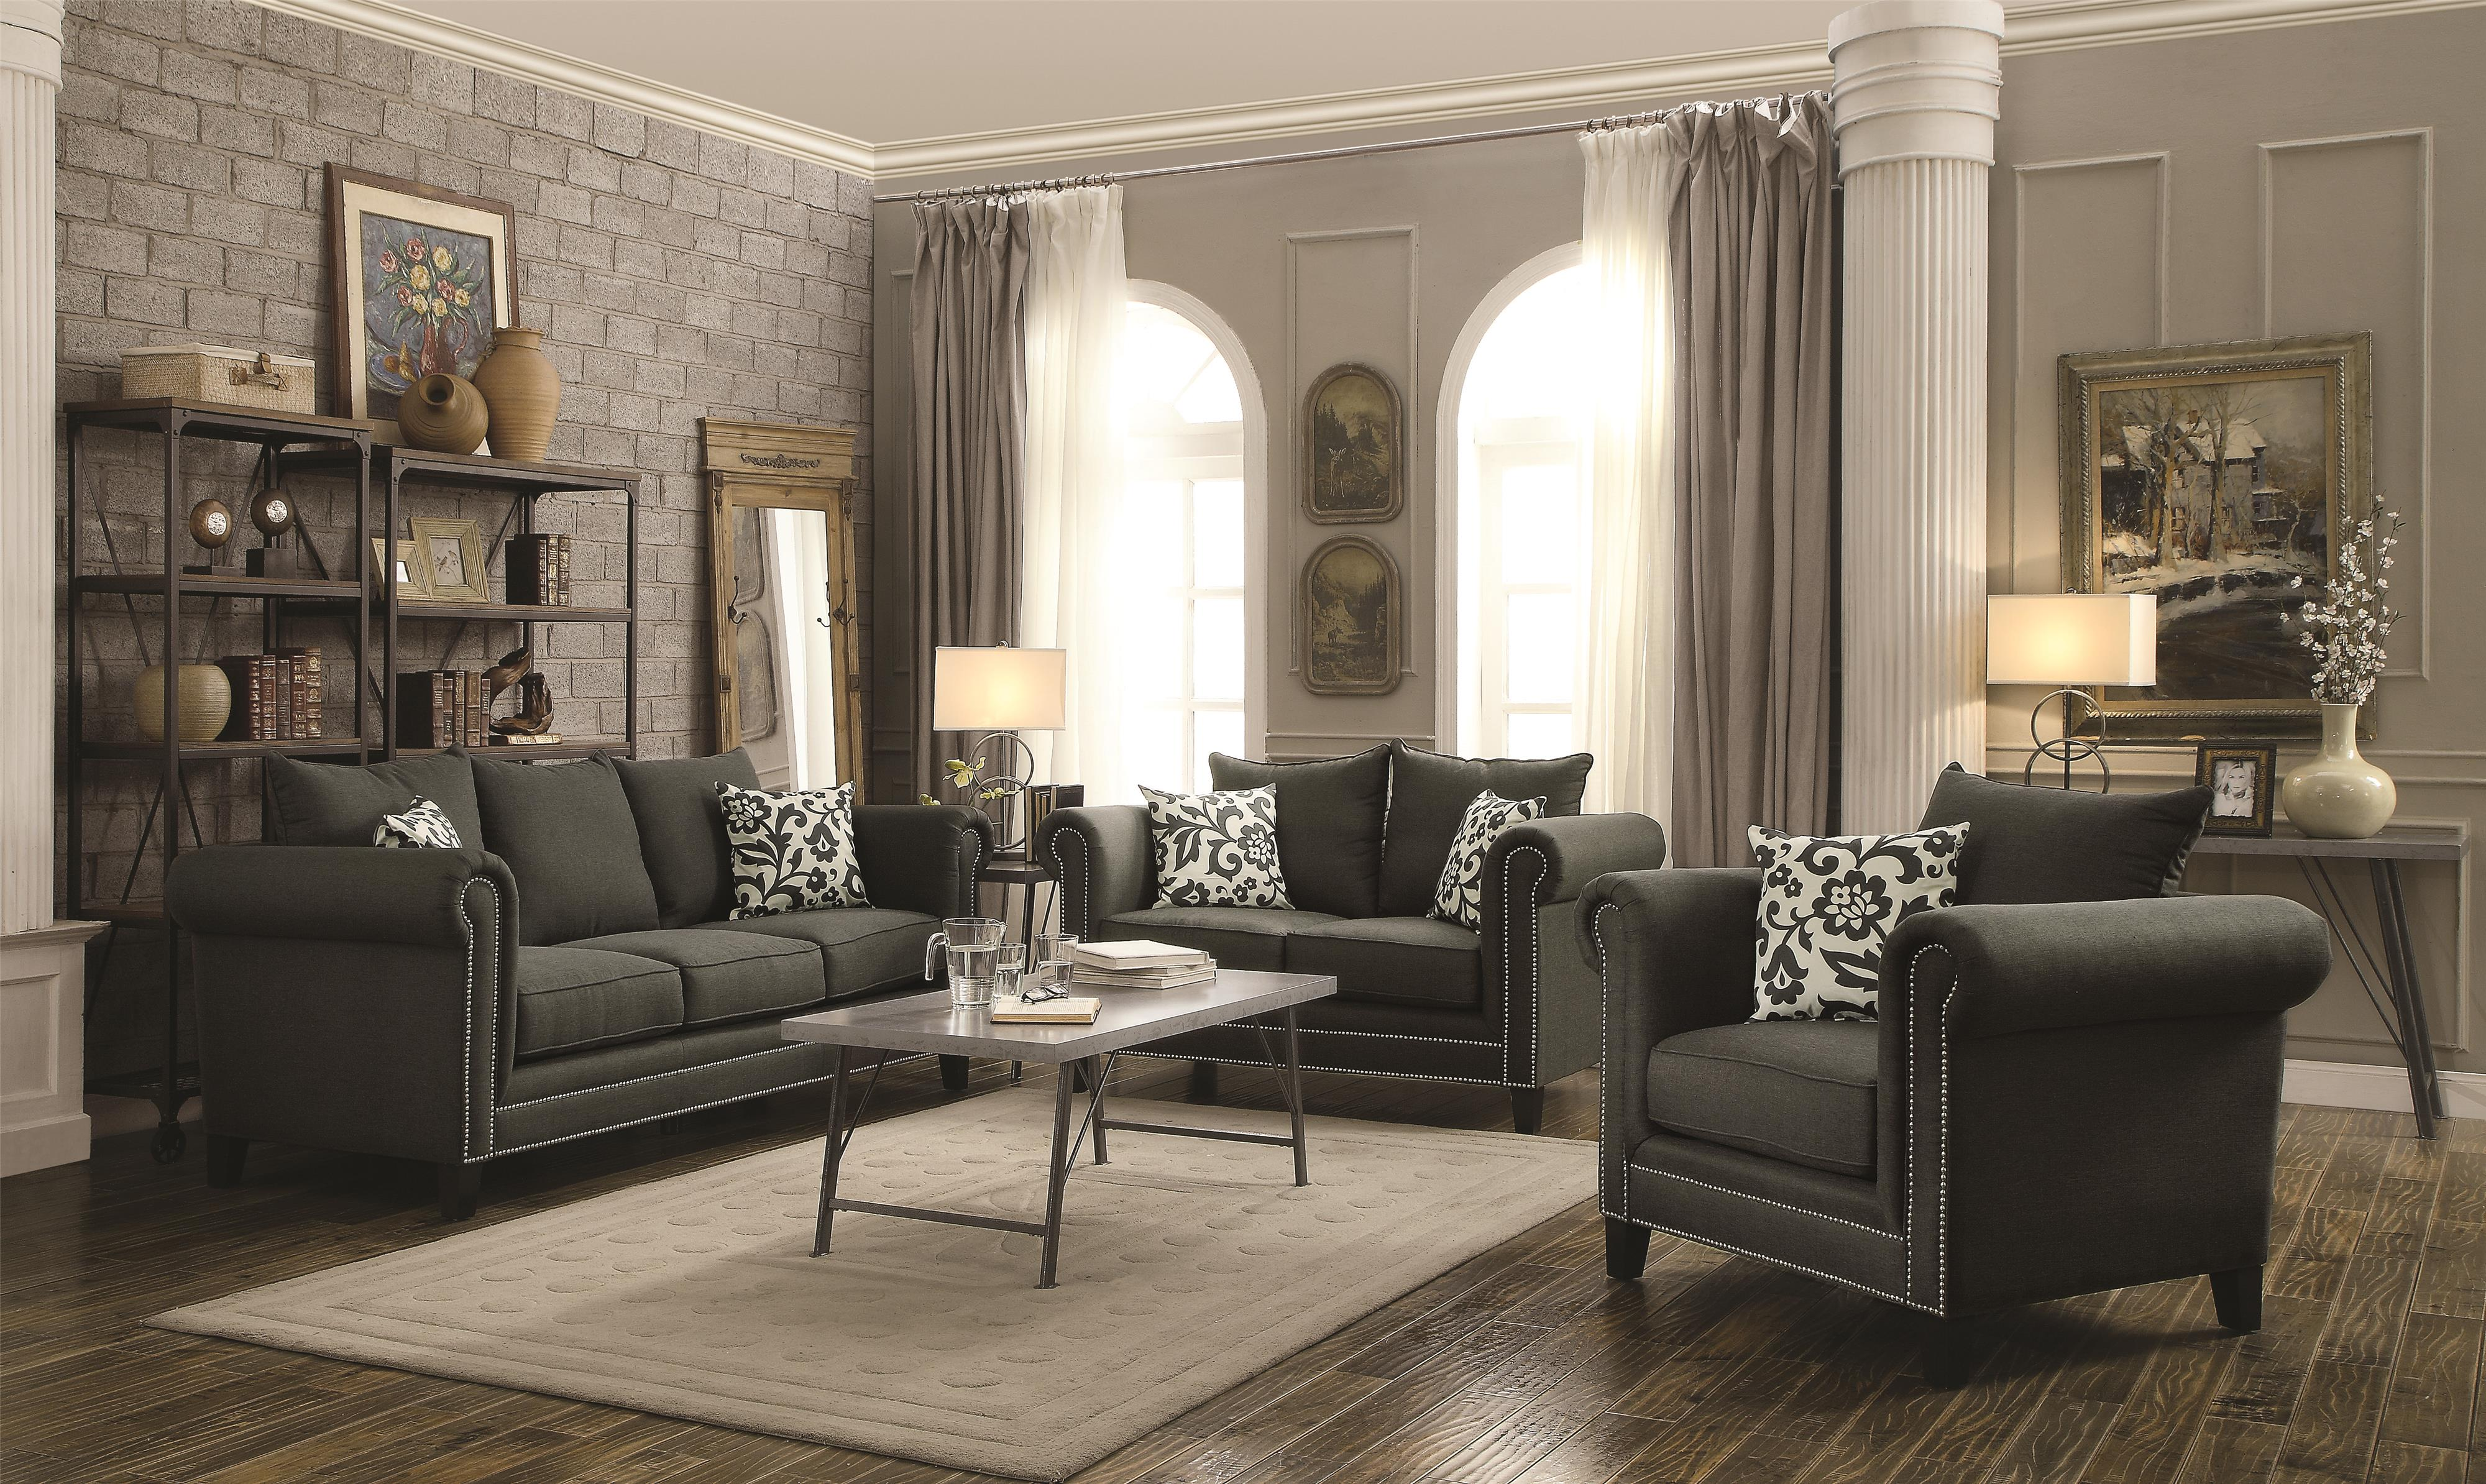 Coaster Emerson Stationary Living Room Group - Item Number: 50491 Living Room Group 1